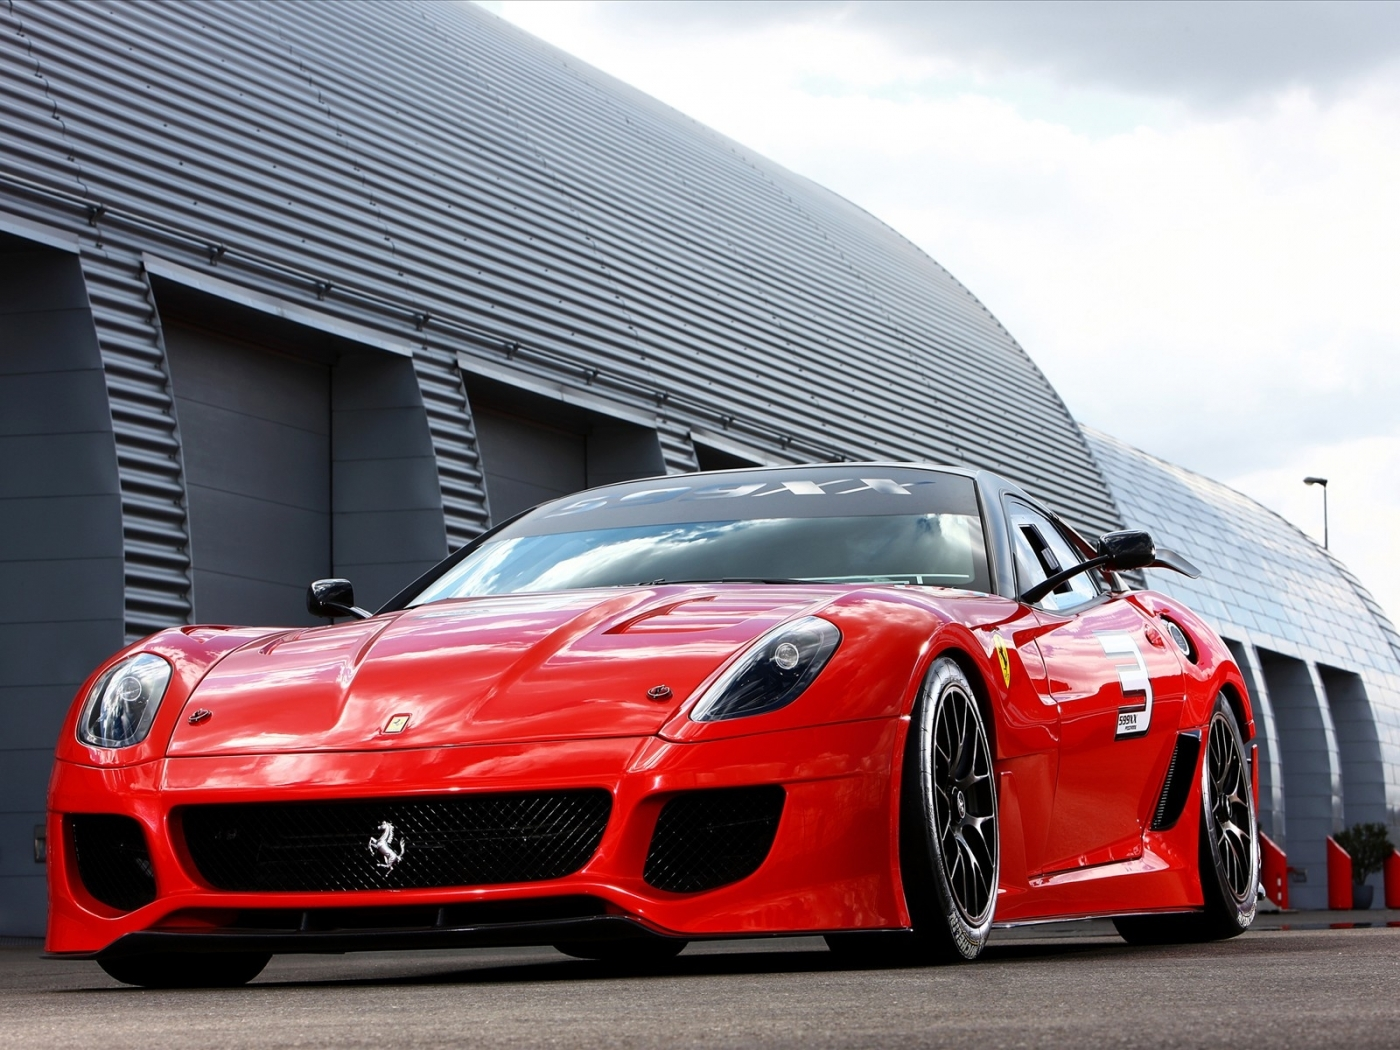 25085 download wallpaper Transport, Auto, Ferrari screensavers and pictures for free